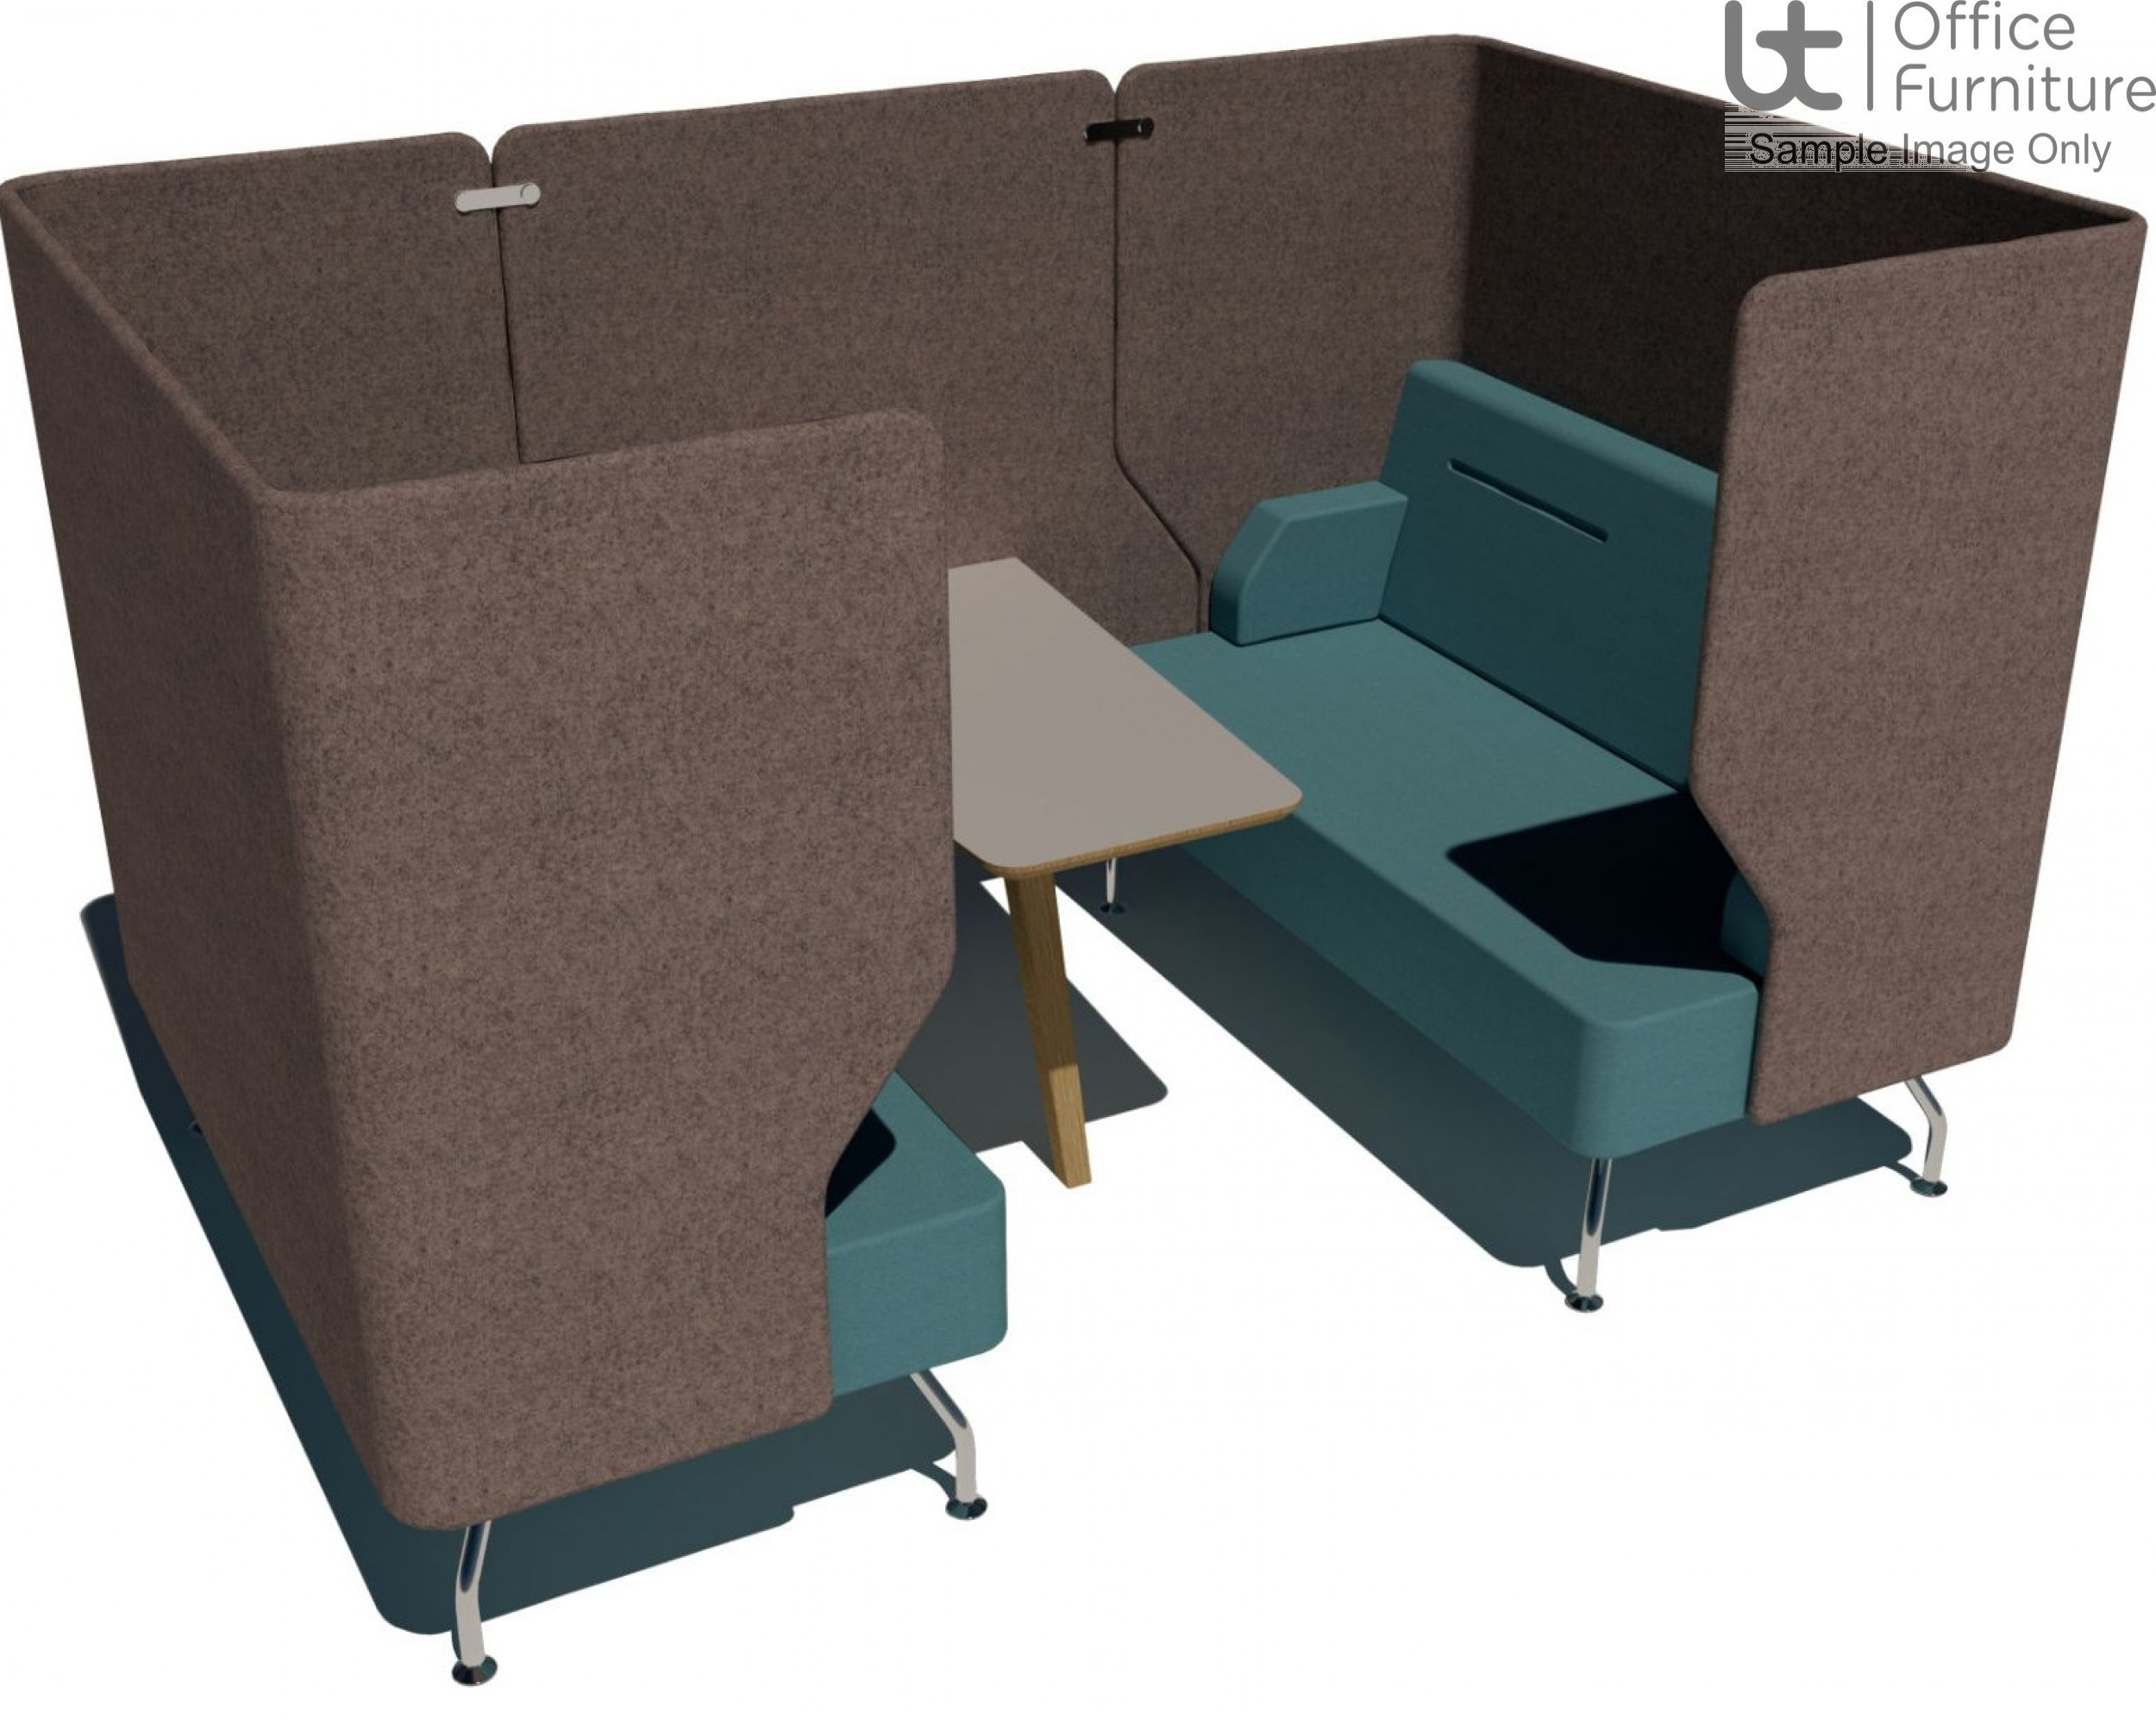 Verco Pod/Booth - Brix-Up Four Person + 800mm Infill Panel & 600mm Deep MFC Table (Metal Legs - Arms NOT inc)